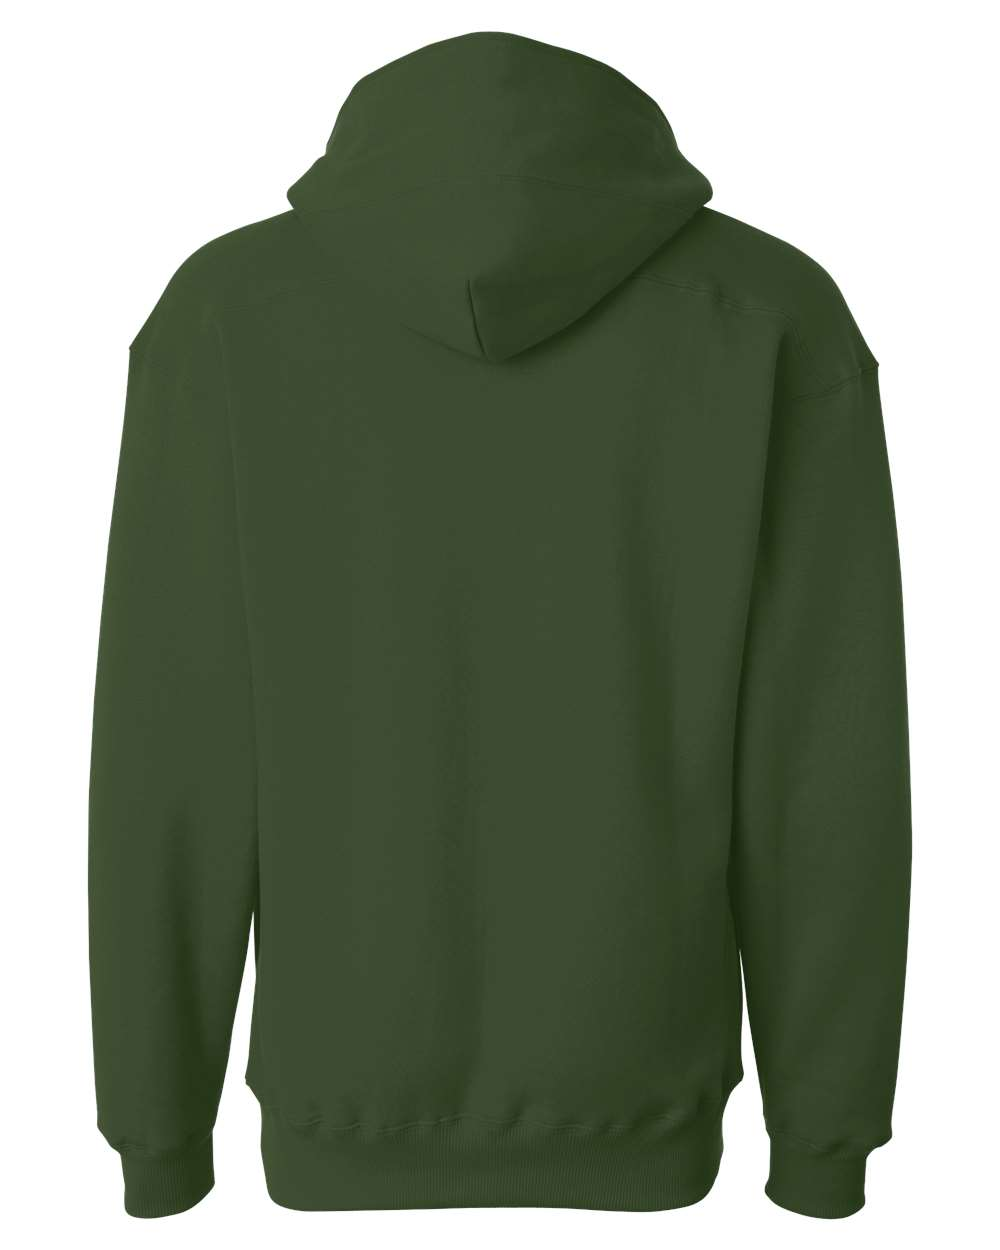 J-America-Mens-Blank-Sport-Lace-Hooded-Sweatshirt-8830-up-to-3XL thumbnail 13